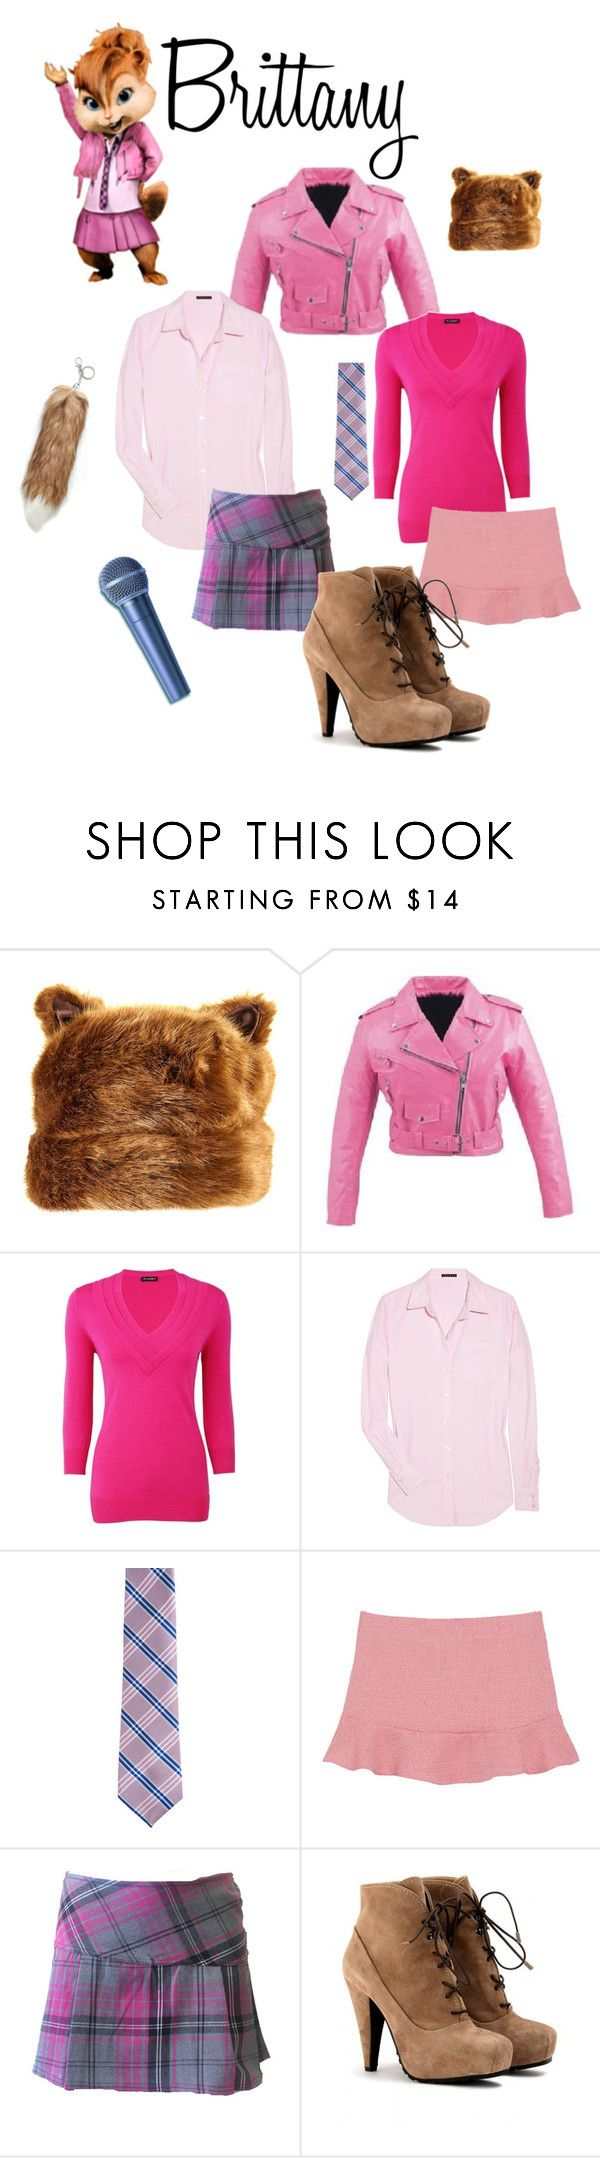 """""""Brittany"""" by djorden ❤ liked on Polyvore featuring Planet, Theory, Fairfax, Proenza Schouler and brittany the chipettes"""